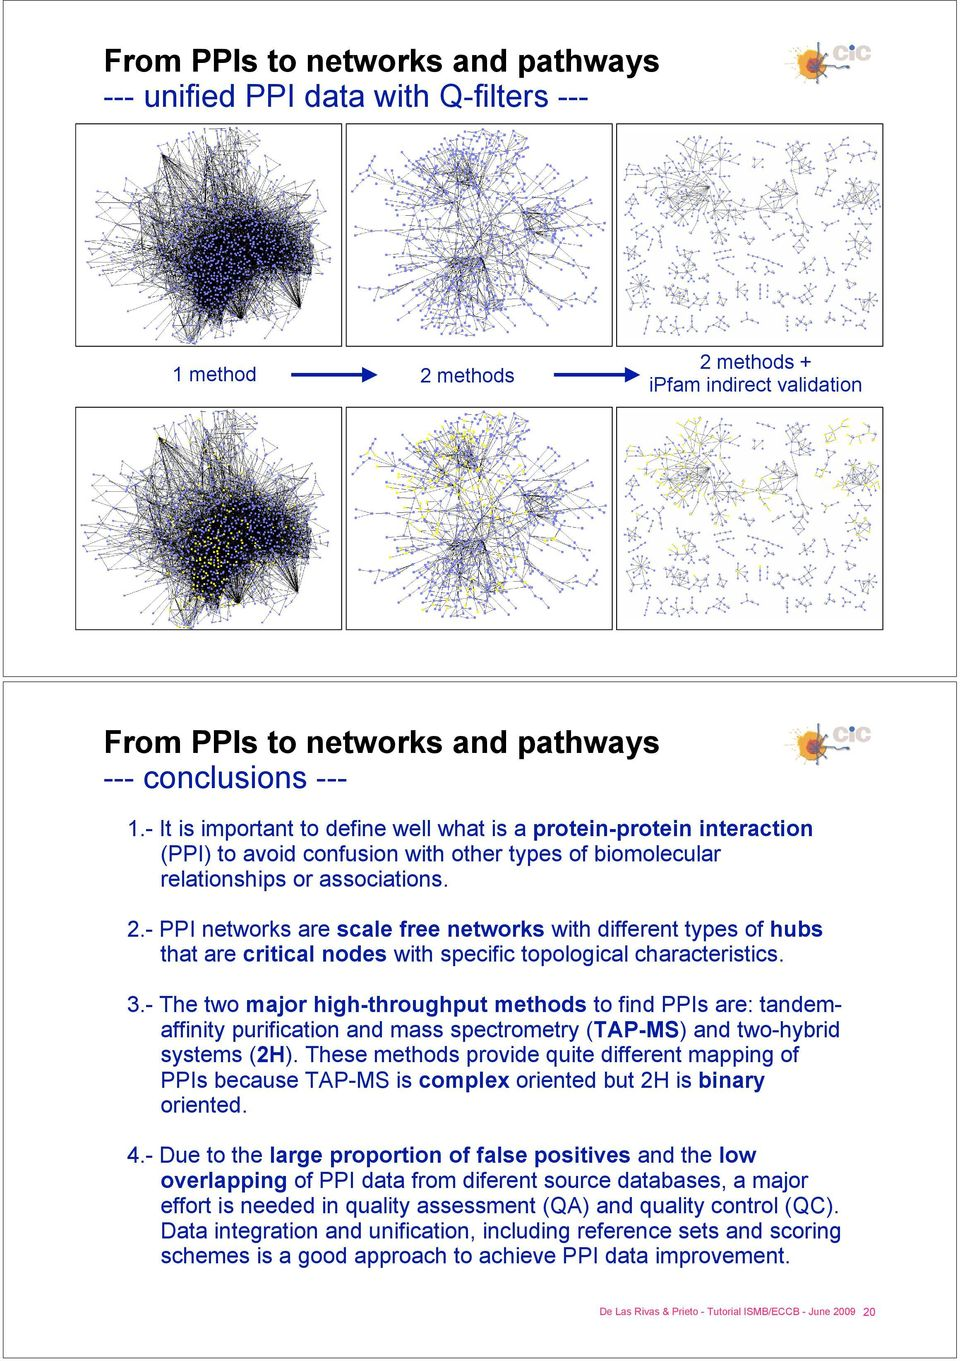 - PPI networks are scale free networks with different types of hubs that are critical nodes with specific topological characteristics. 3.